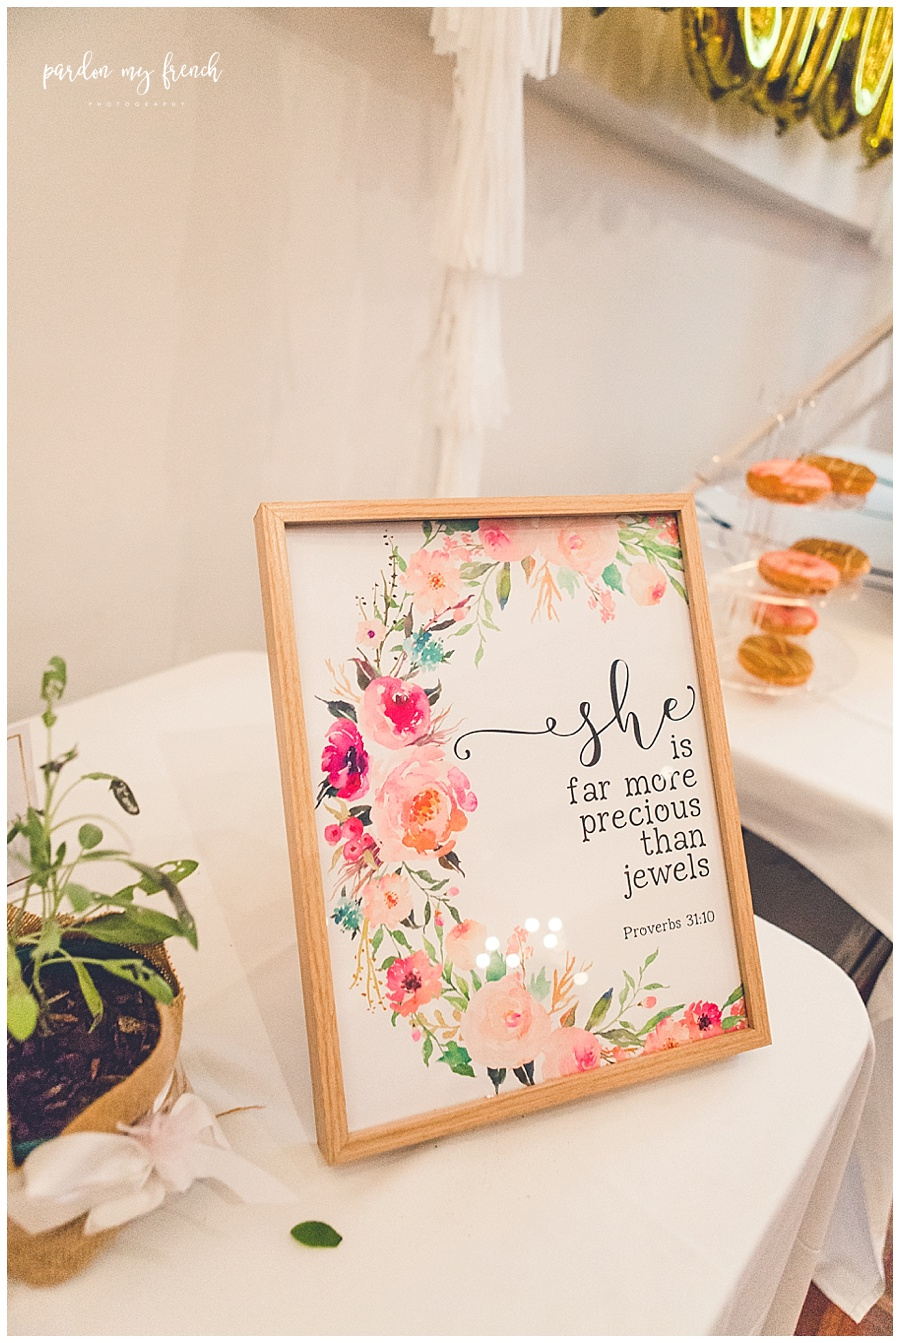 Adelaide Event Photographer copyright Pardon my French photography 56.jpg